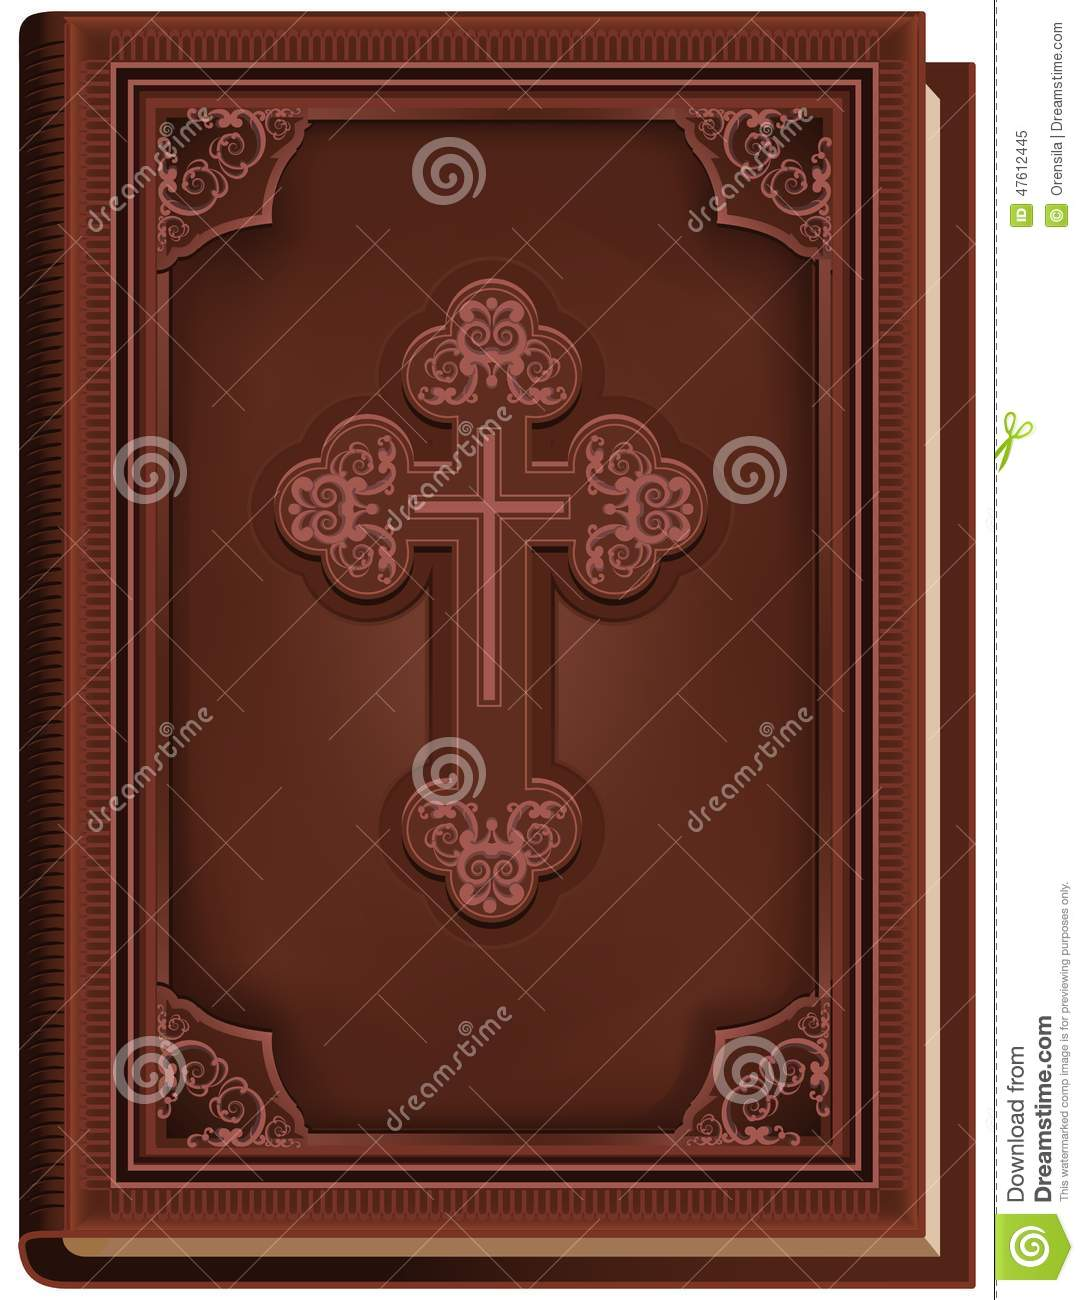 Book Cover Illustration Royalties : The bible closed book with a cross on cover stock